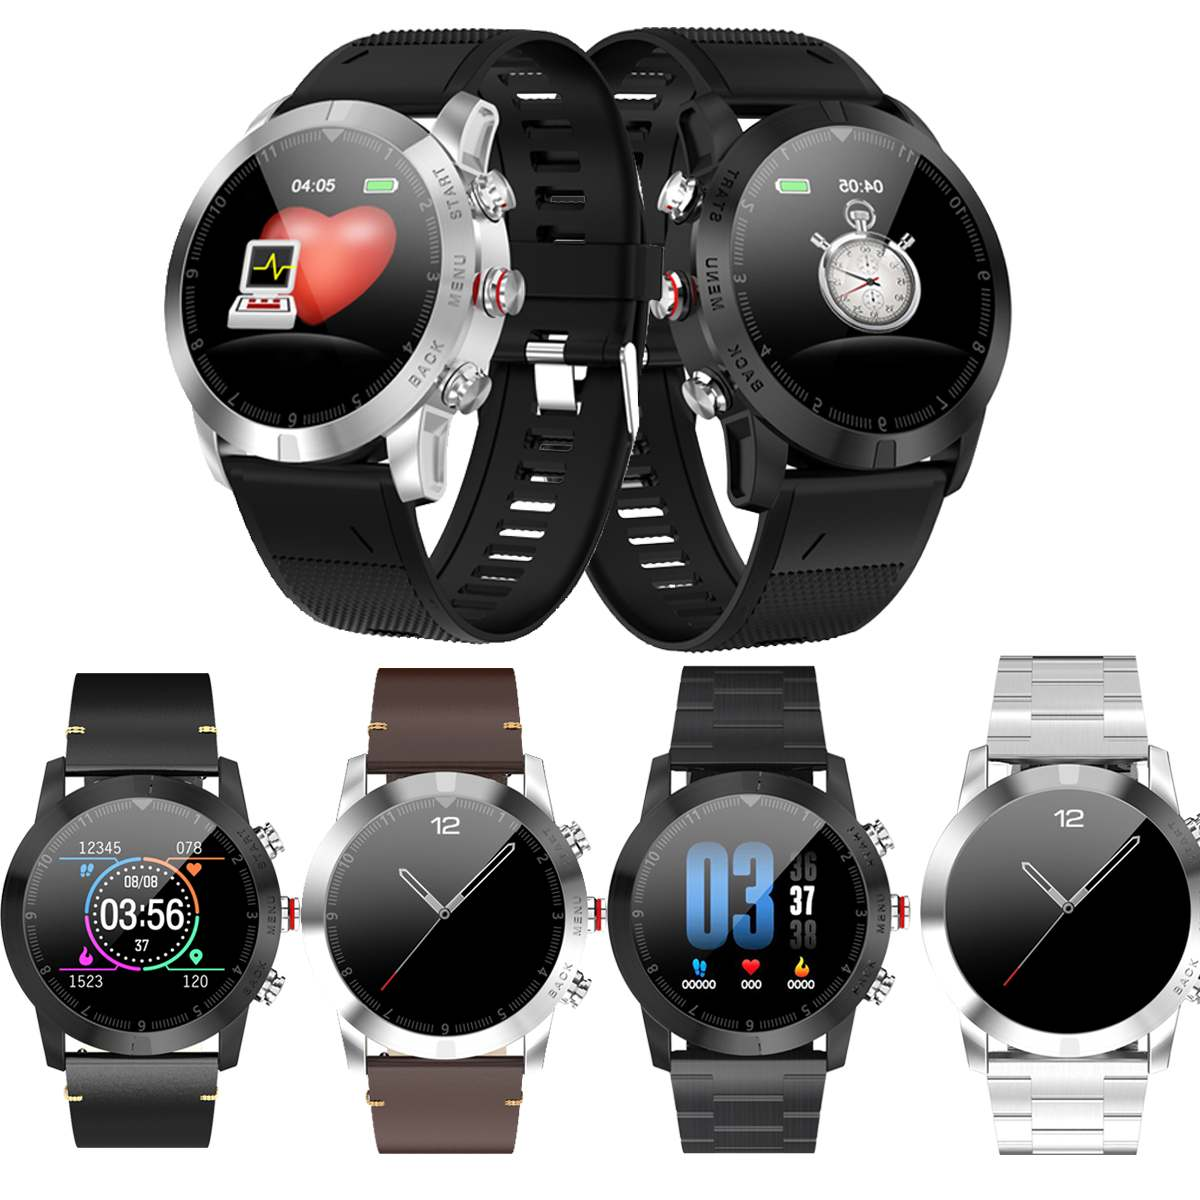 <font><b>DT</b></font> NO.1 <font><b>S10</b></font> <font><b>Smart</b></font> <font><b>Watch</b></font> Detachable Design 1.3